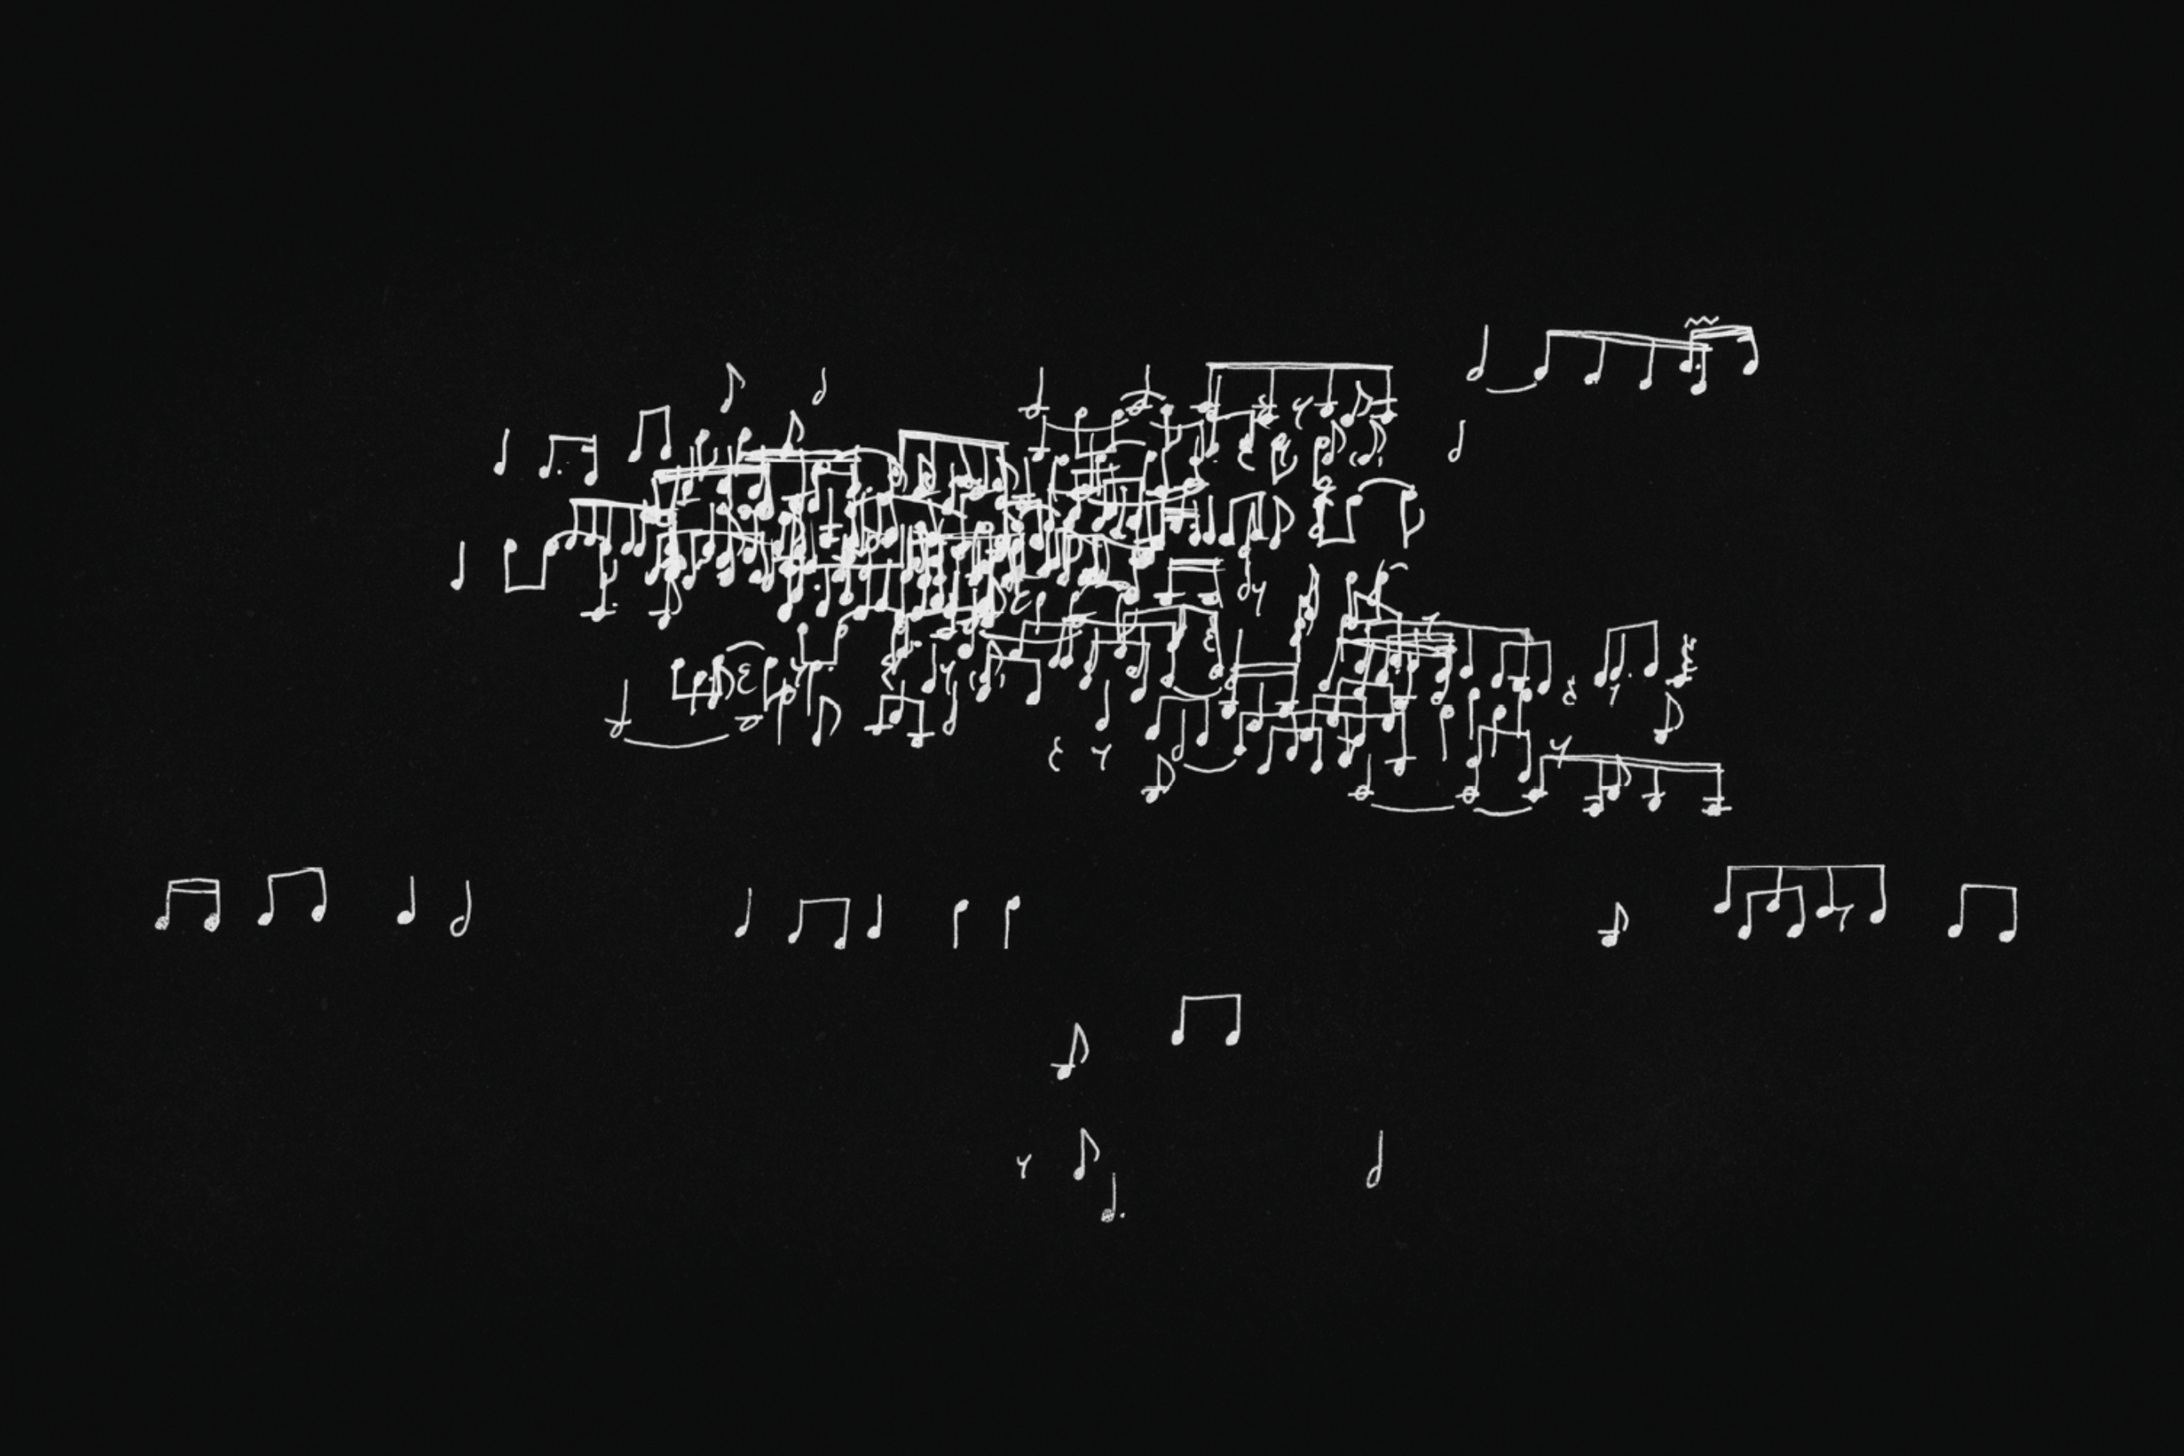 Enharmonic - The world premiere of an original piece of music for piano, strings, and ondes Martenot, composed by Miriam and Alison Bean as part of 'Enhamornic' for Journeys Festival International 2019.